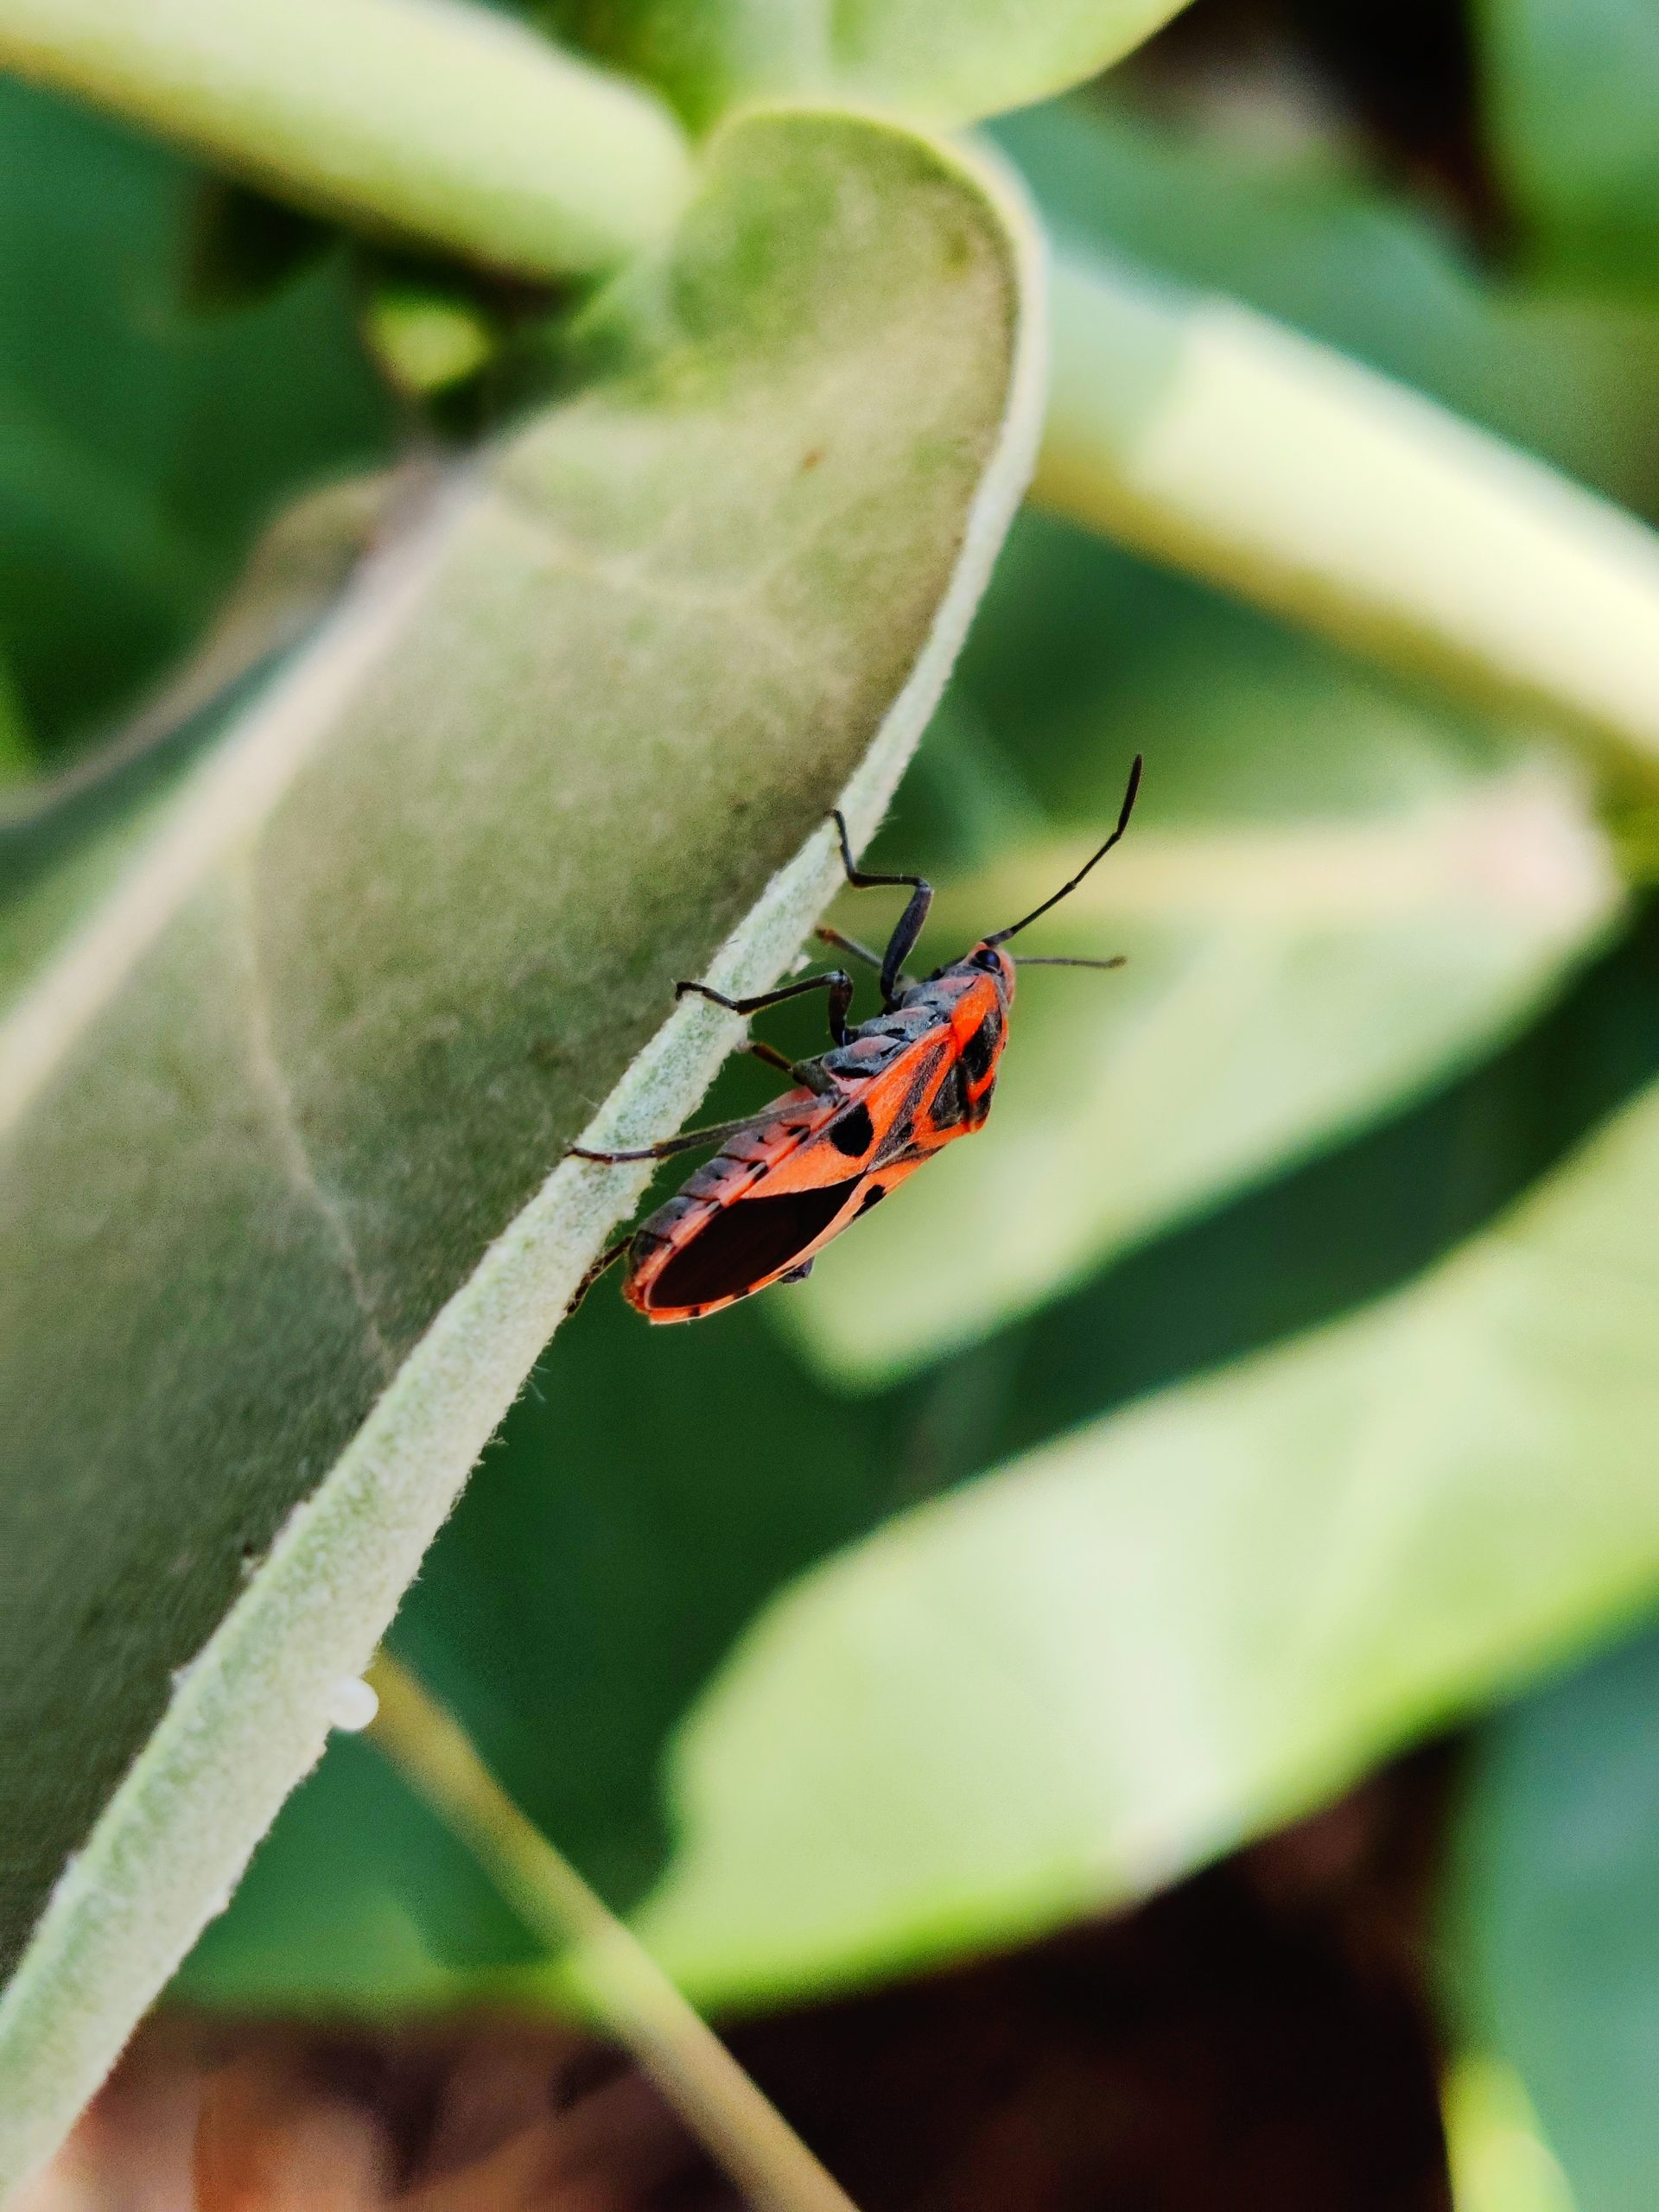 Red bug on plant leaf